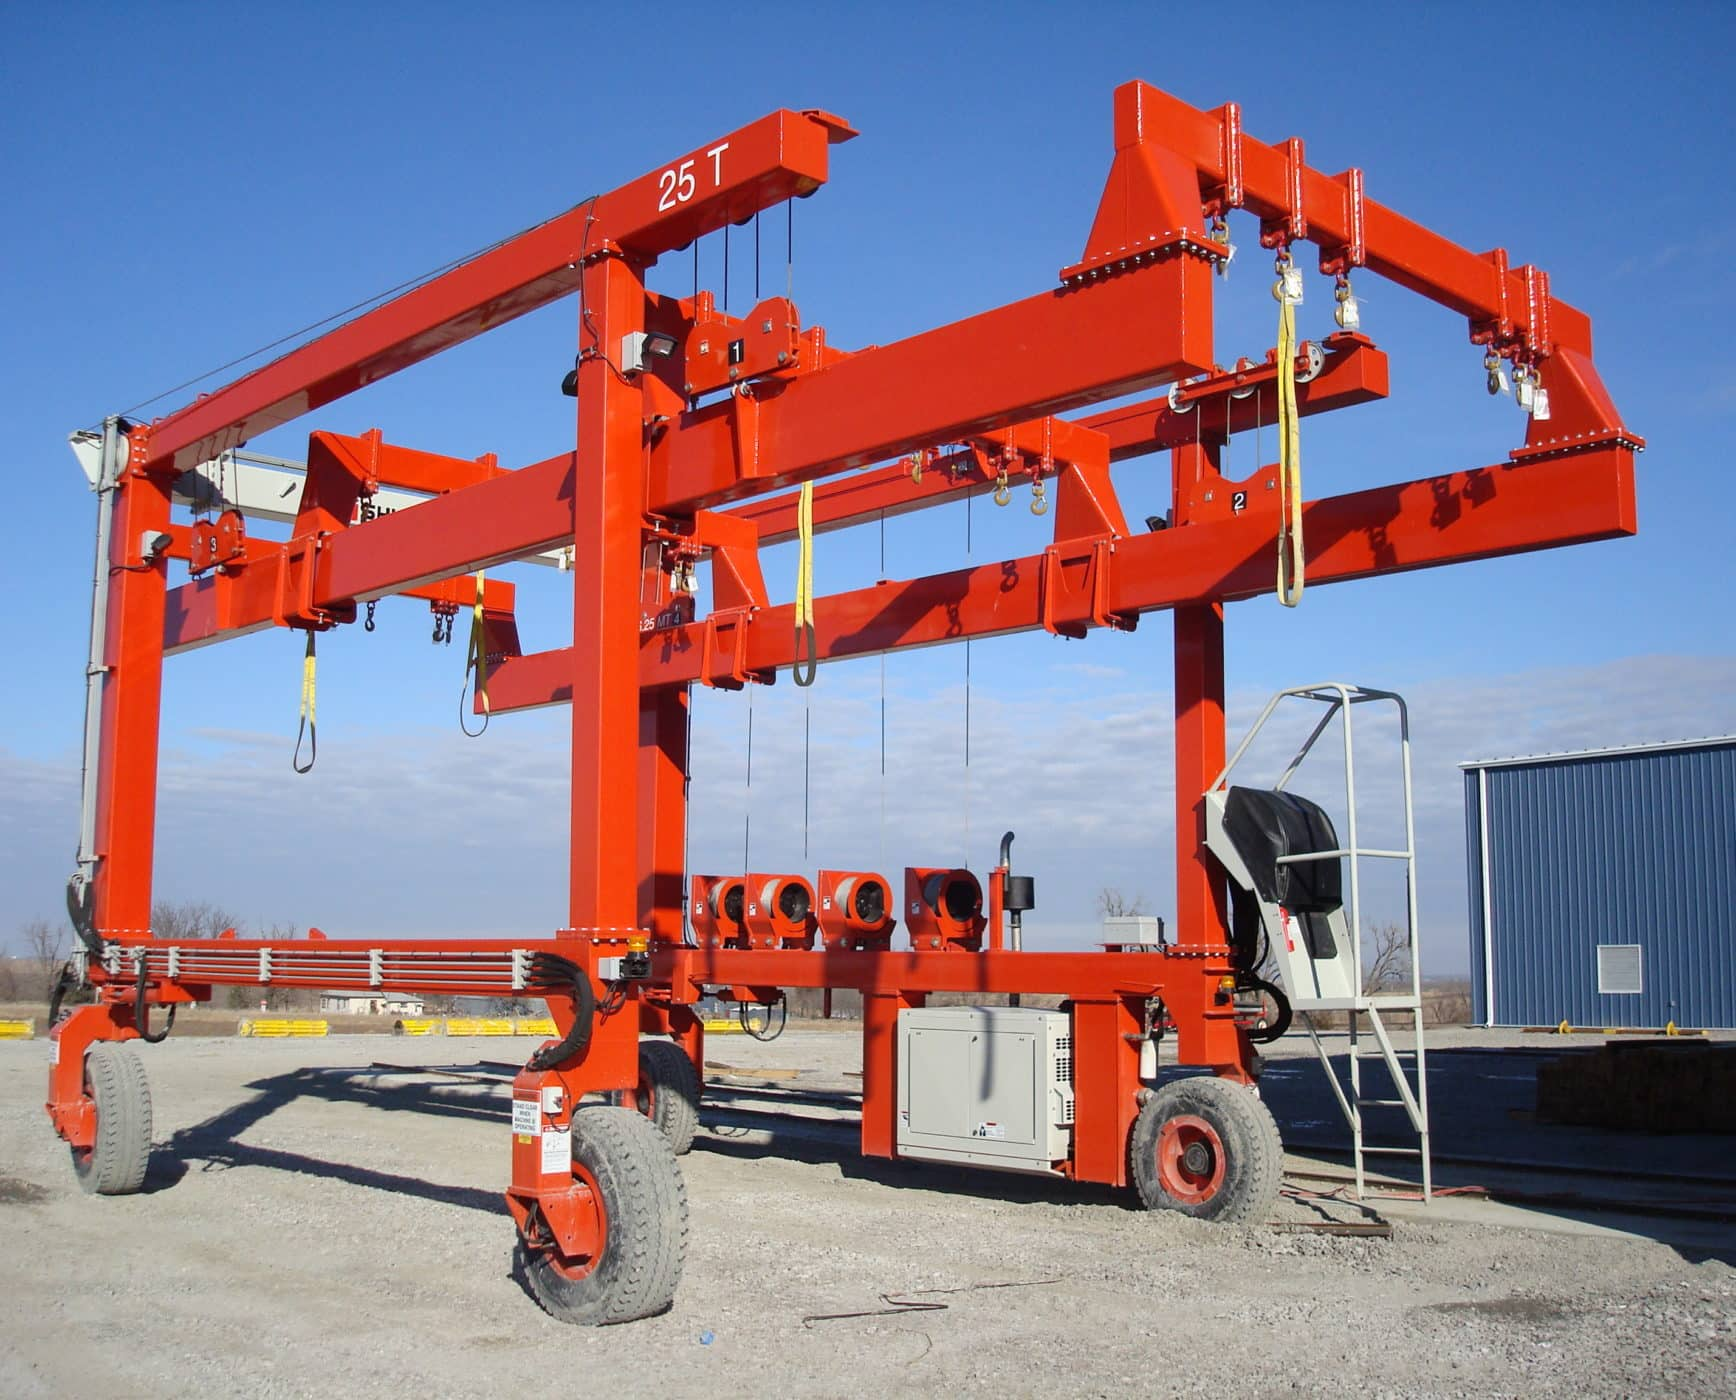 Large Crane with Spreaders for Lifting